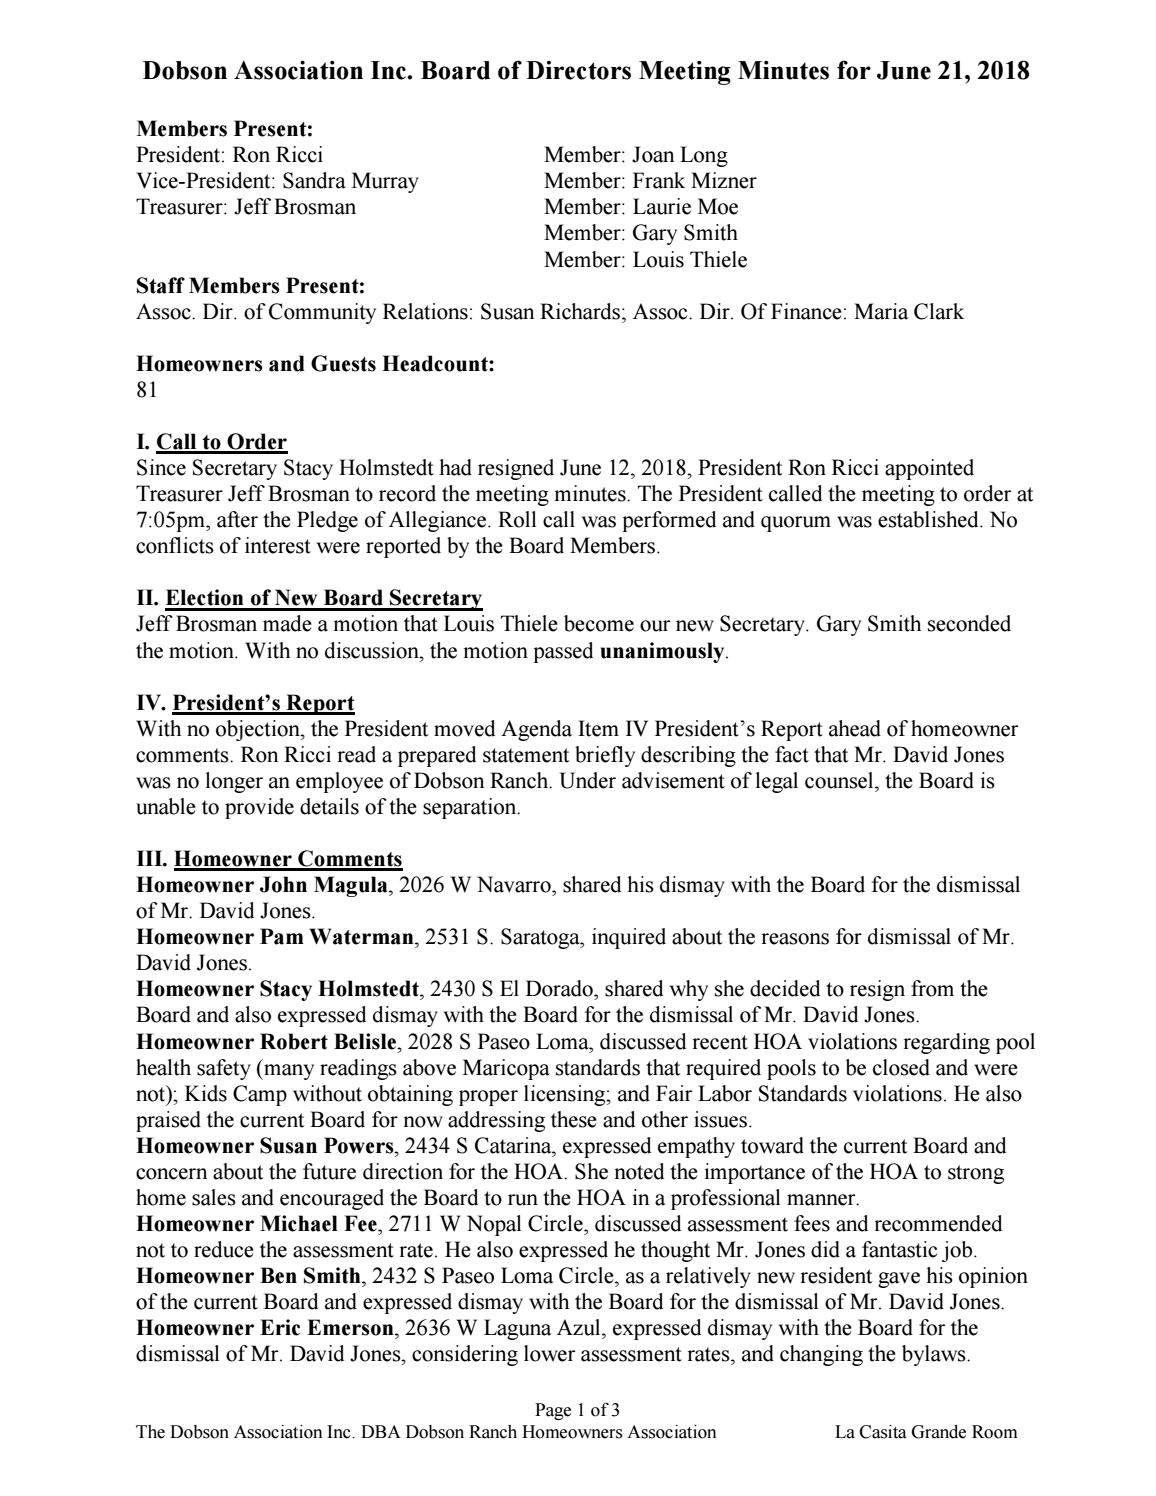 BOARD OF DIRECTORS JUNE 21 2018 MINUTES by The Dobson Association